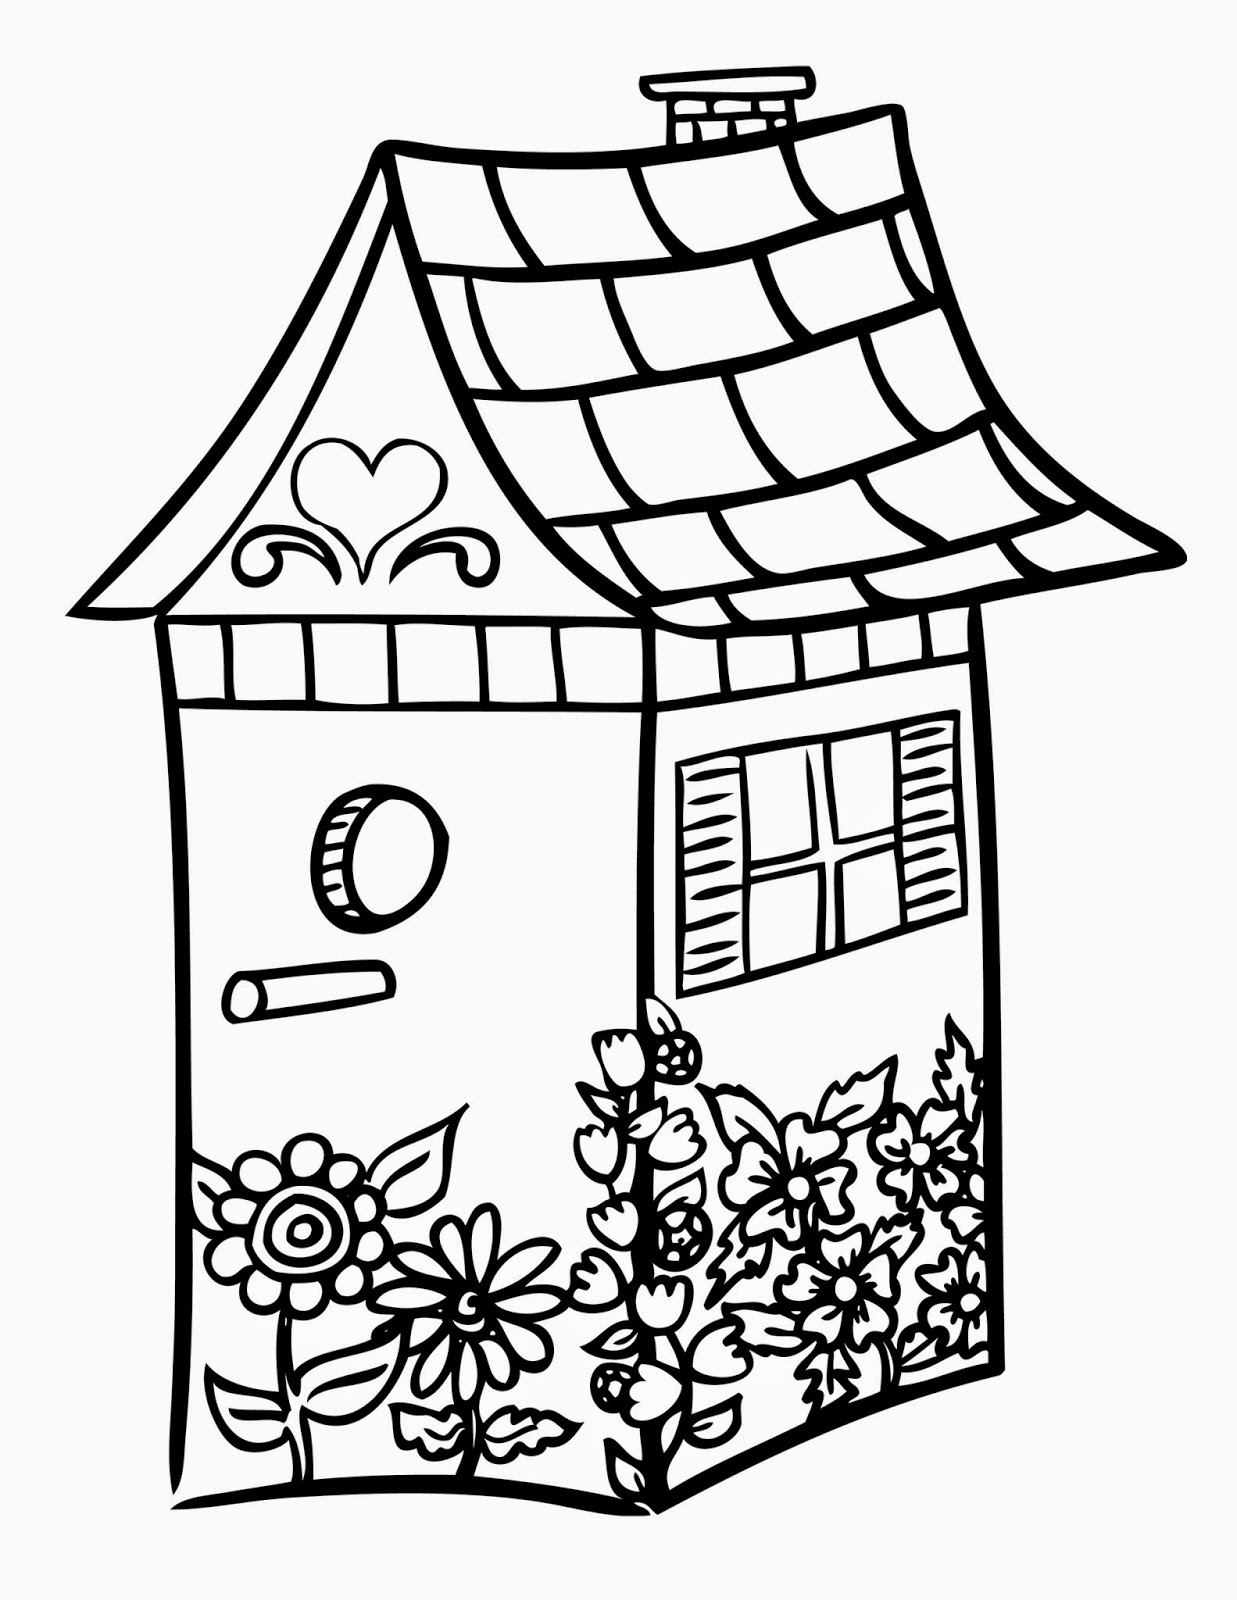 1237x1600 Daisies, Digis And Doodads Free Digi Stamps A Freebie For You